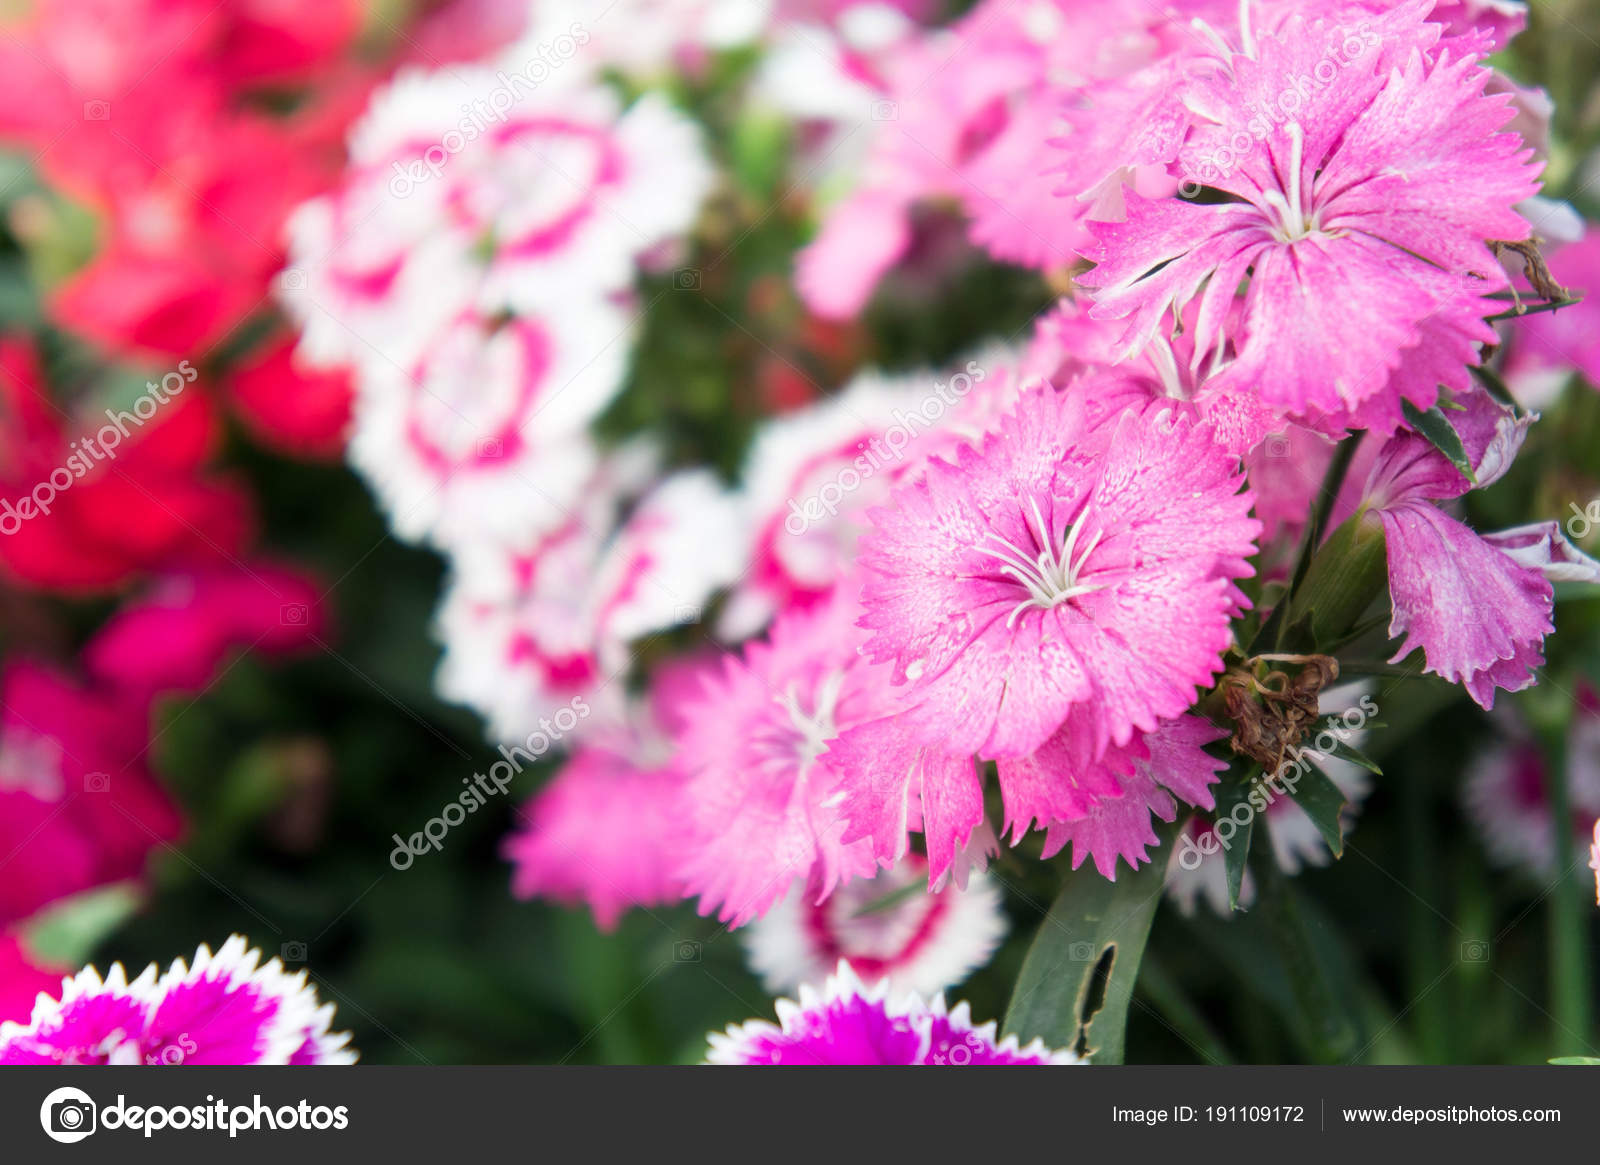 Dianthus Flowers Colorful Flowers Daisy Vivid Flowers In The G